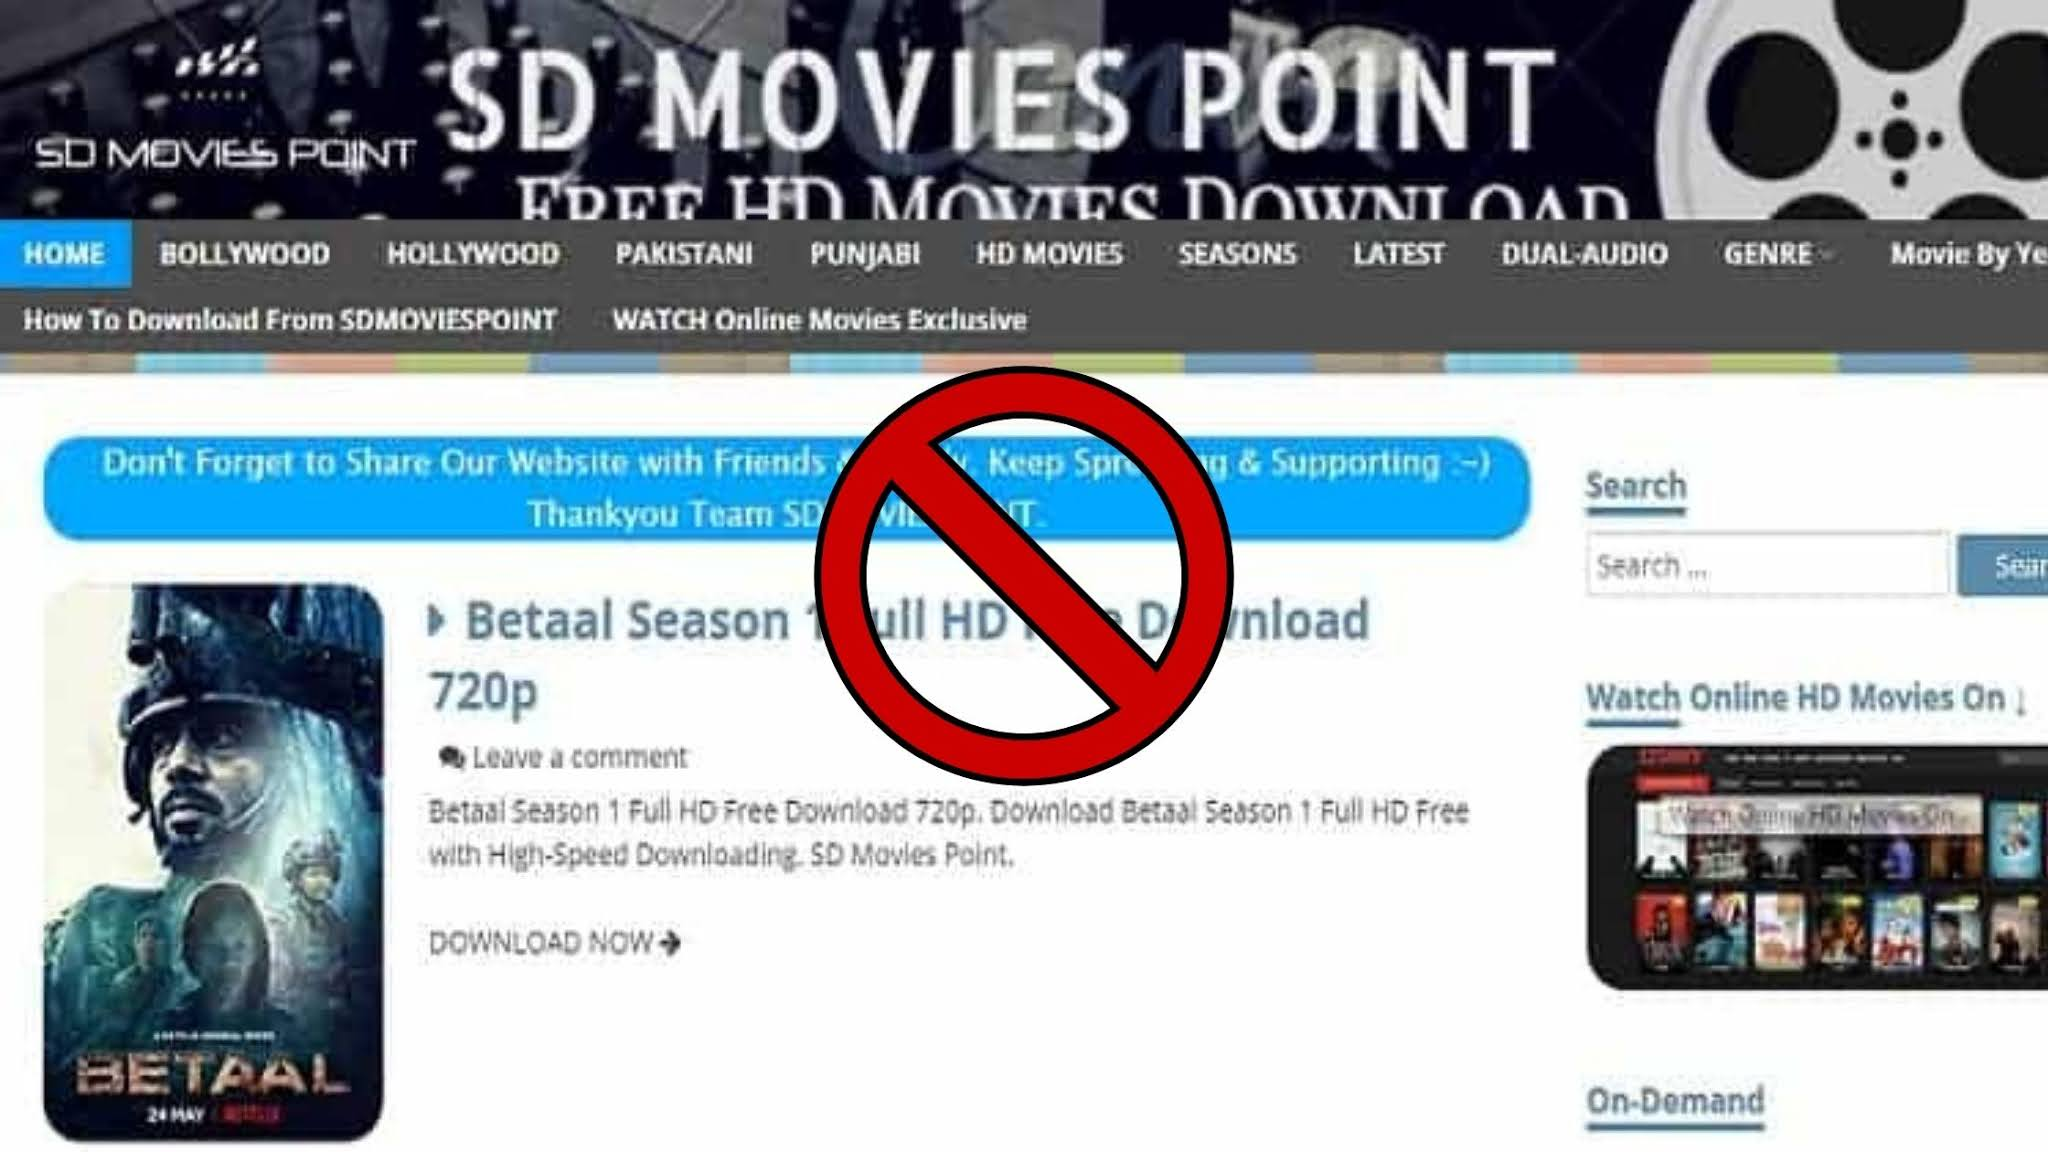 Sd Movies Point 2021 ~ Piracy Website Link Download HD Movies, Latest Dual Audio, Live Watch, News About Sd Movies Points